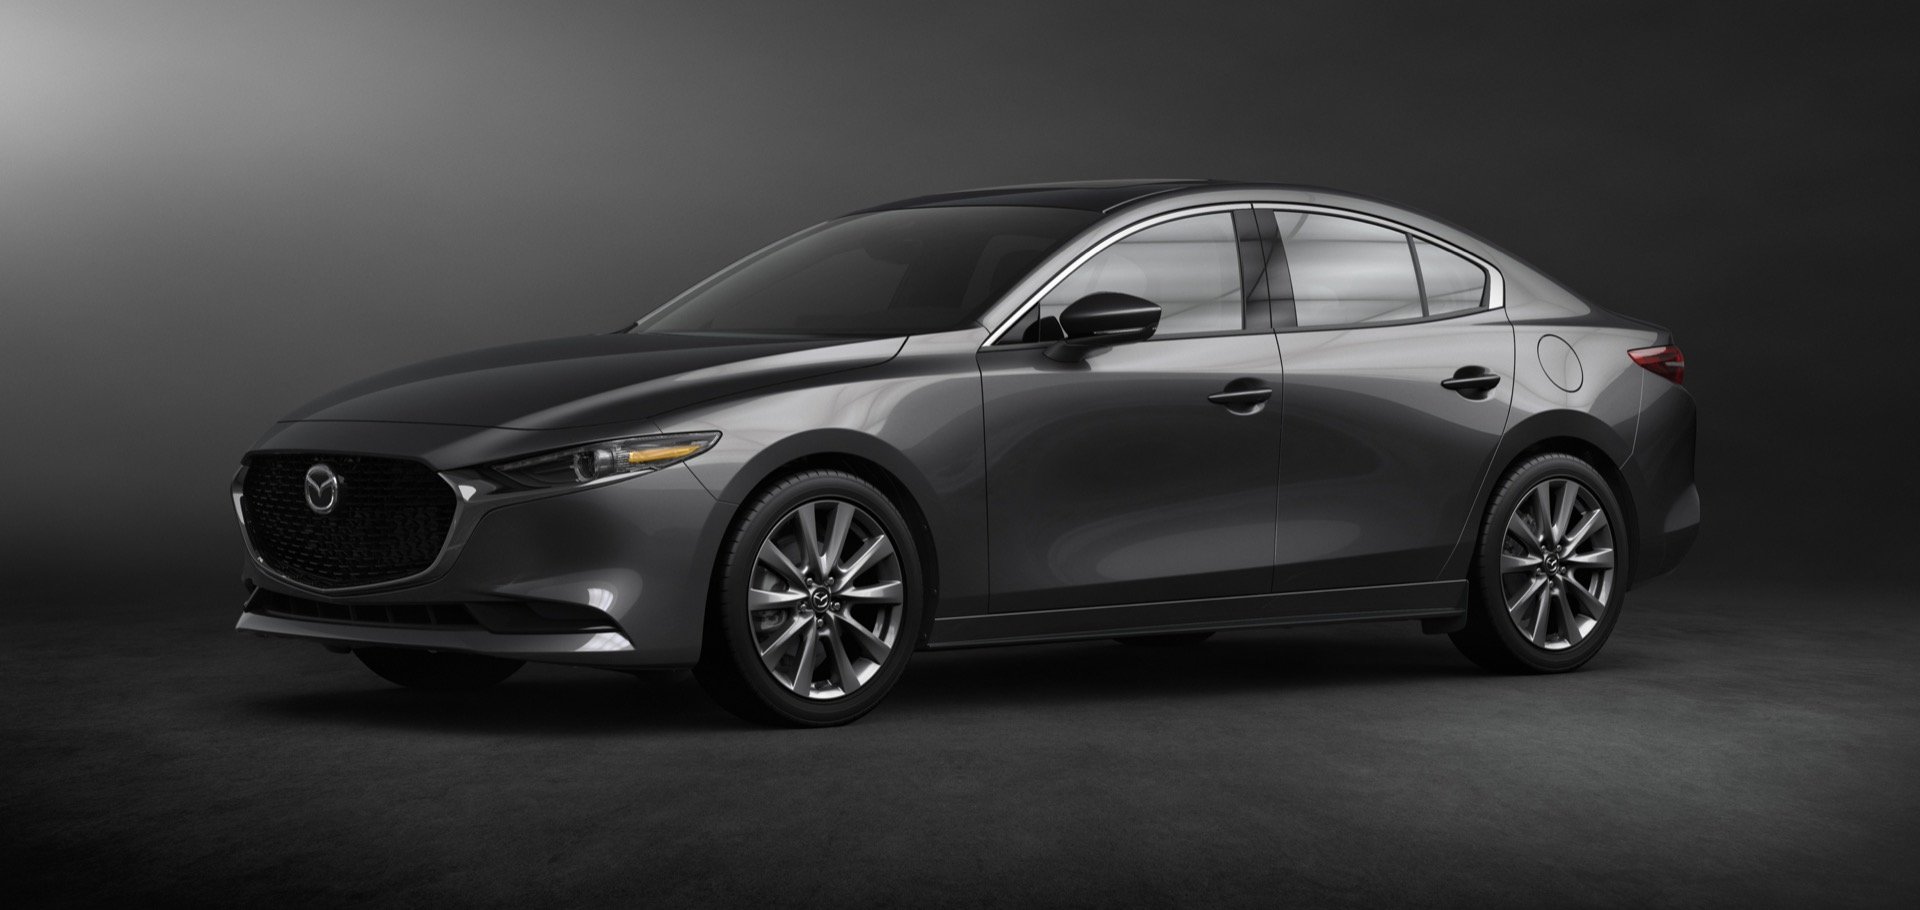 2019 mazda 3 costs 21 895 cheapest awd model adds 3 000. Black Bedroom Furniture Sets. Home Design Ideas